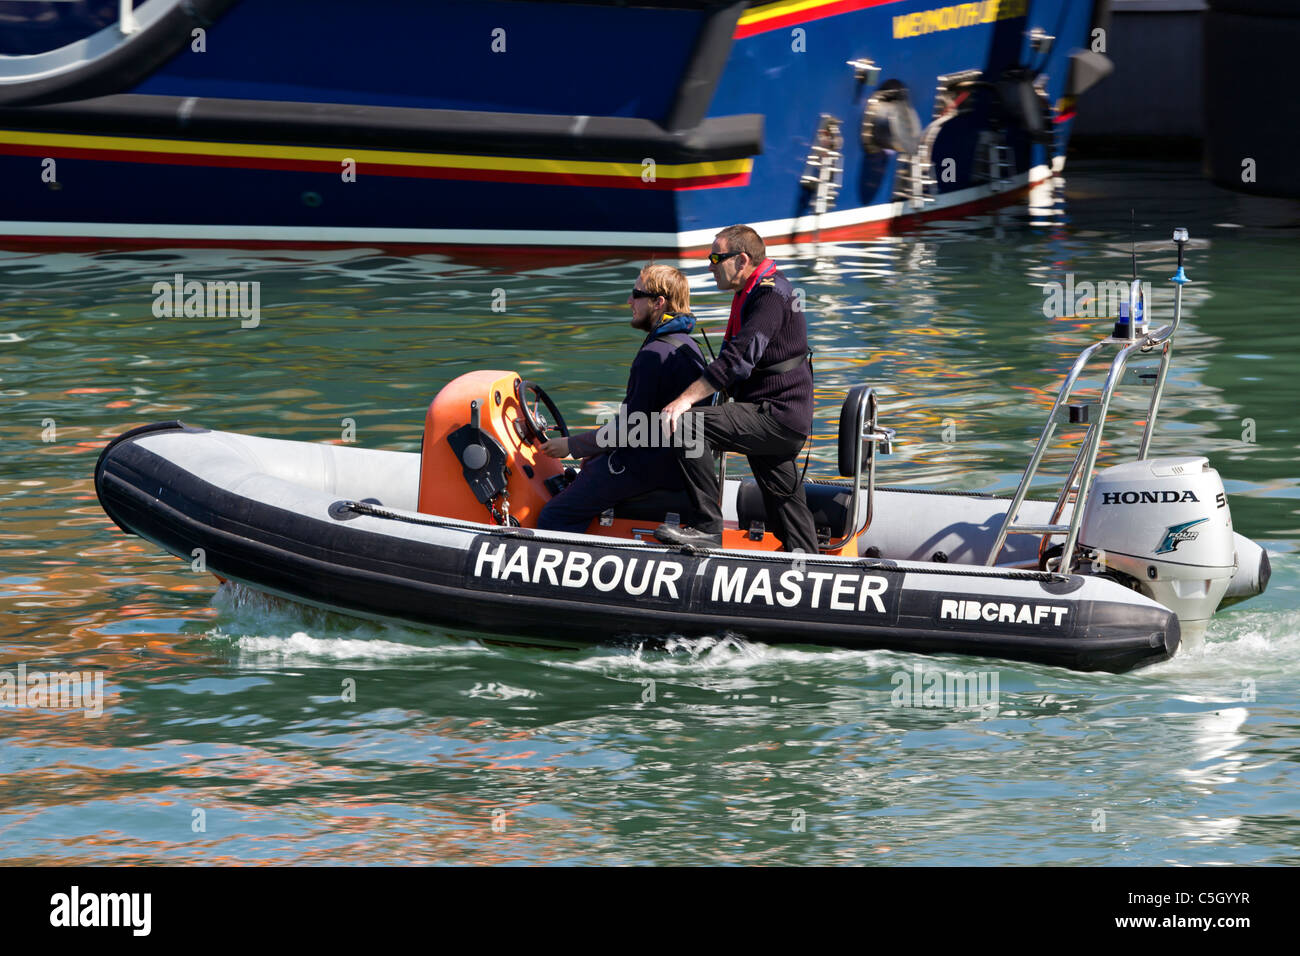 Harbour (harbor) master / harbourmaster / harbormaster ribcraft rib outboard powered boat in harbour - Stock Image